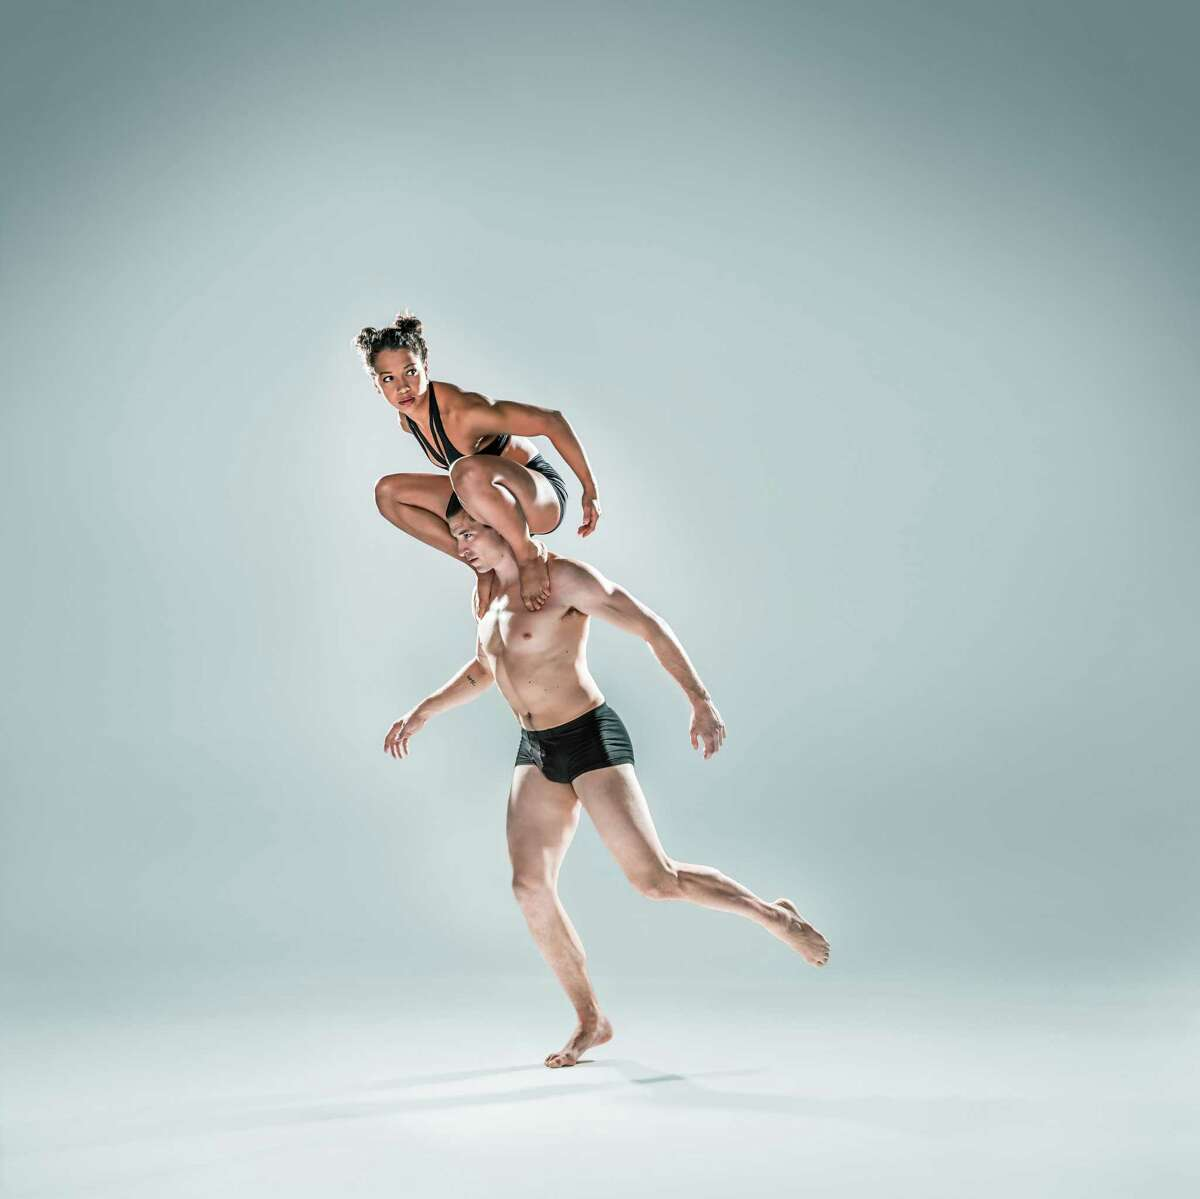 The Quick Center at Fairfield University is serving as the home base for the modern dance troupe Pilobolus through the end of August.